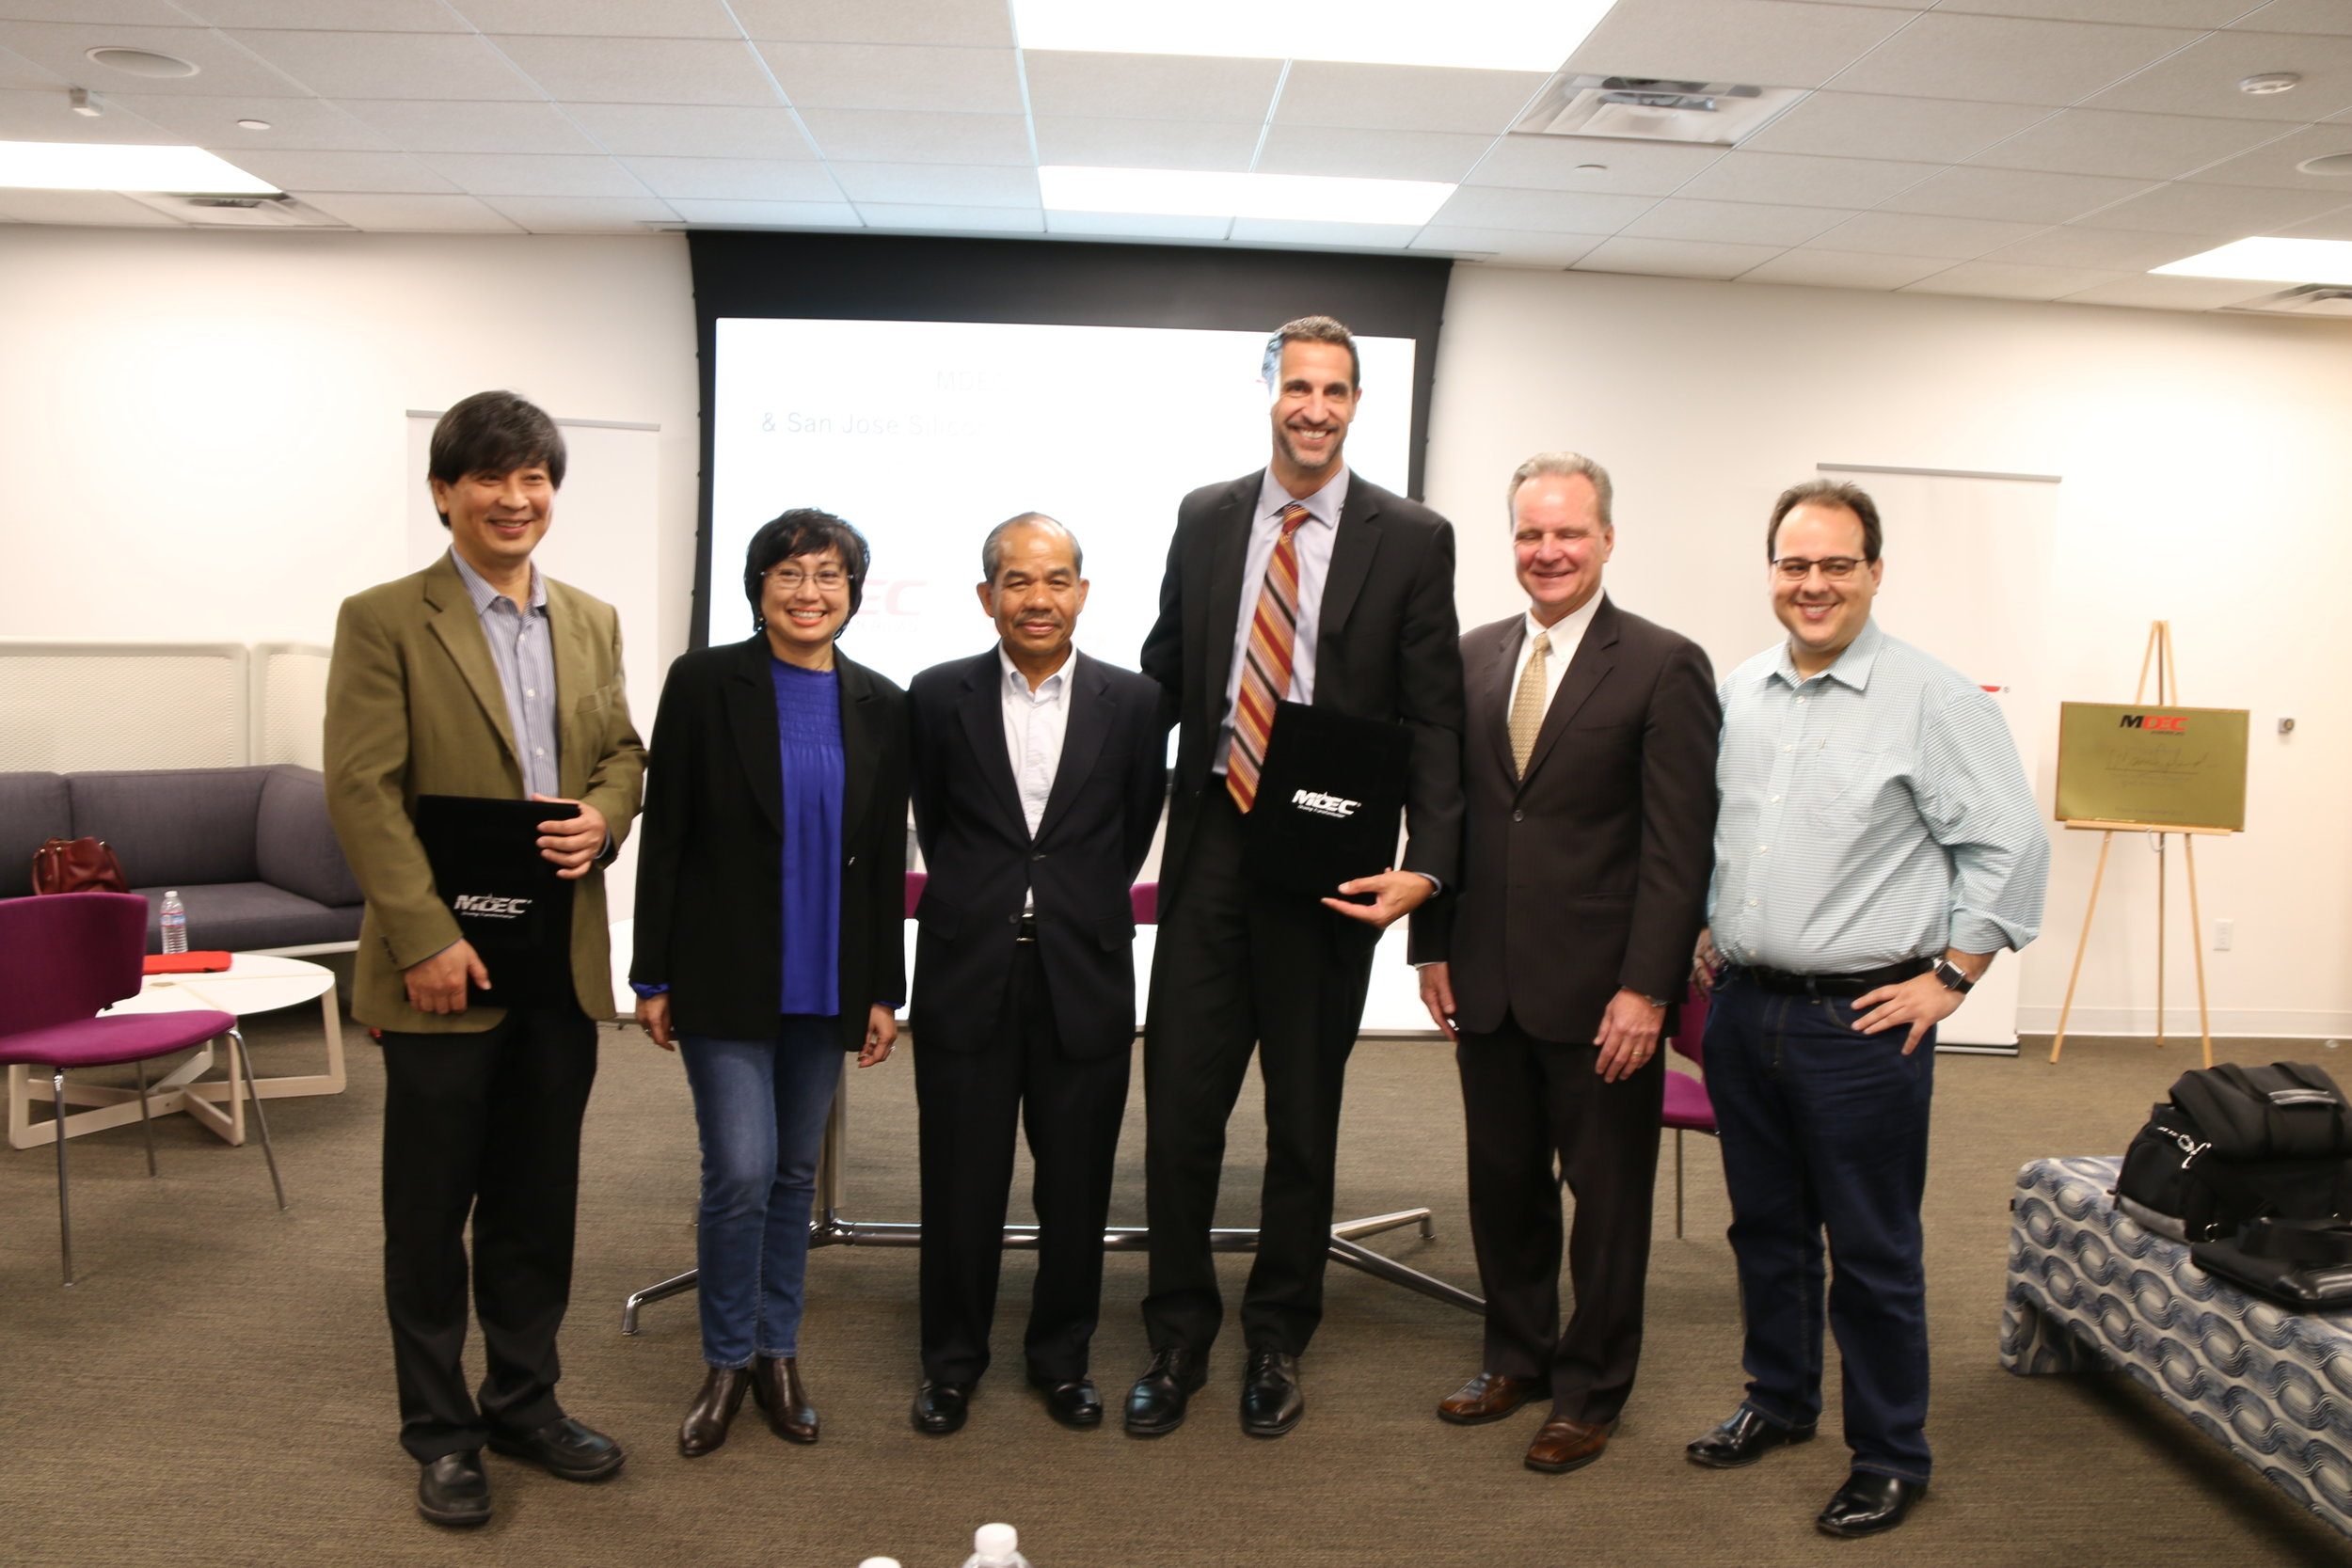 from left to right: dan e khoo, president mdec americas, Yasmin Mahmood, MDEC ceo, Tan Sidek Hassan,  MDEC CHAIRMAN , matthew mahood, president & ceo silicon valley san jose chamber of commerce, david cortese, Santa Clara County Board of Supervisors President, and cosmo fagundo, SJSV Chamber Vice Chair of Economic Advancement.